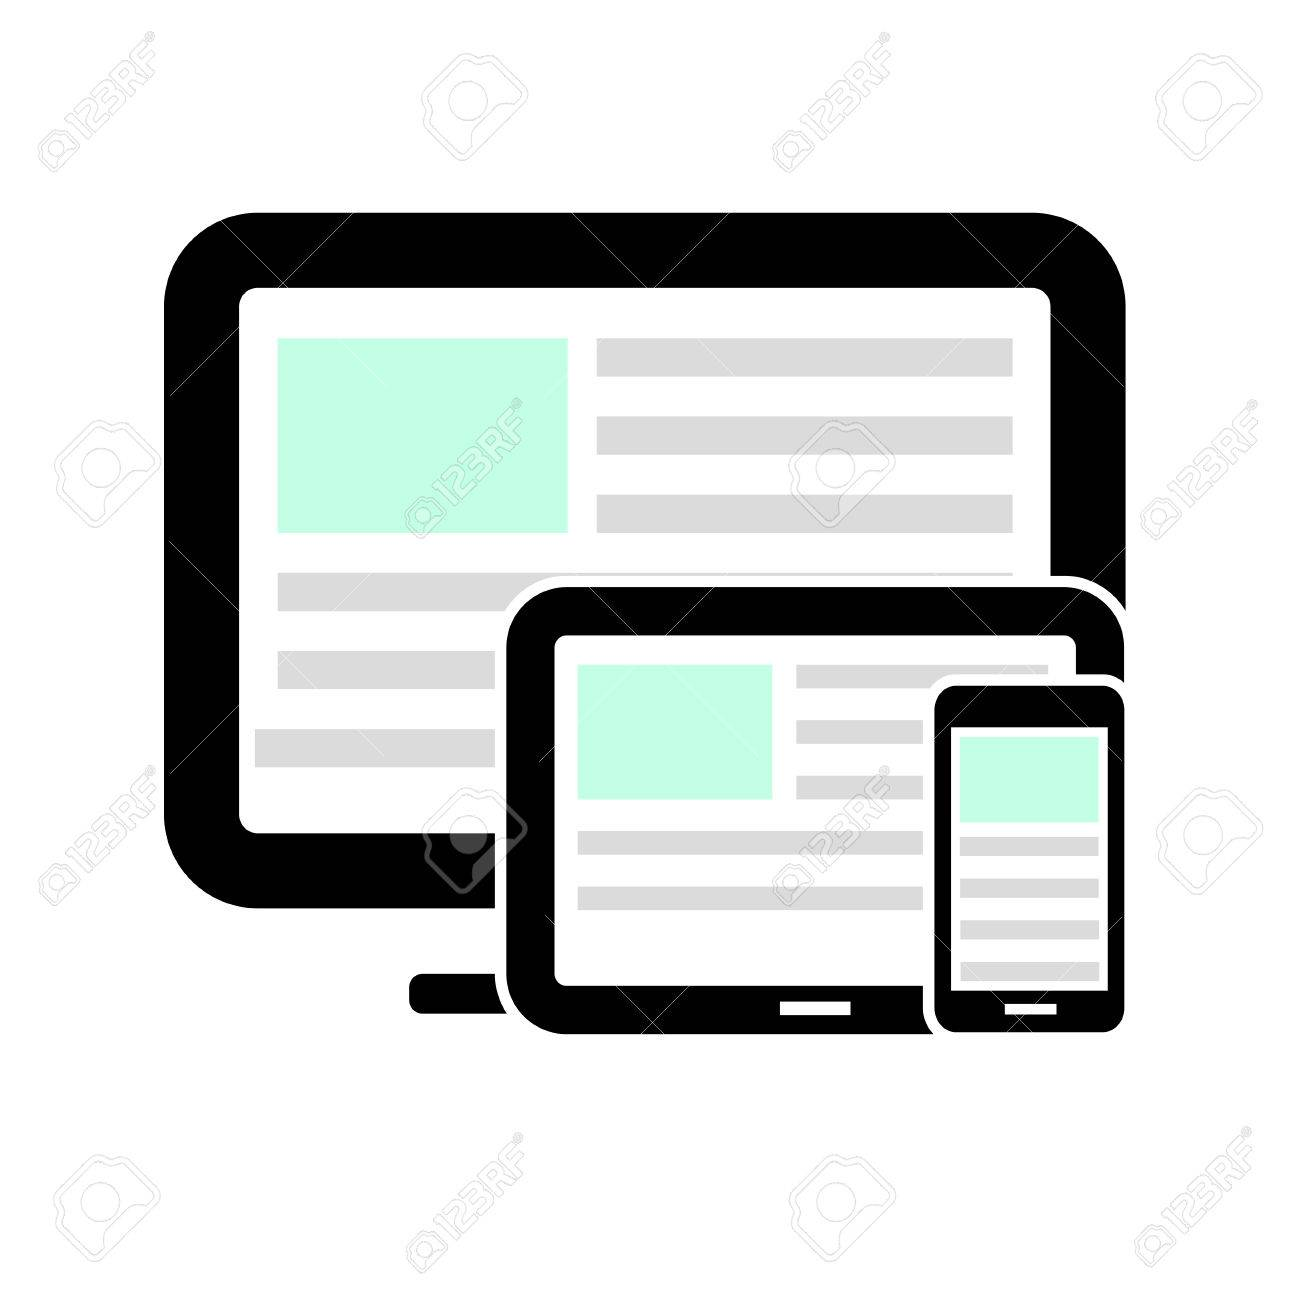 Display, tablet computer and mobile phone. Stock Vector - 22811410